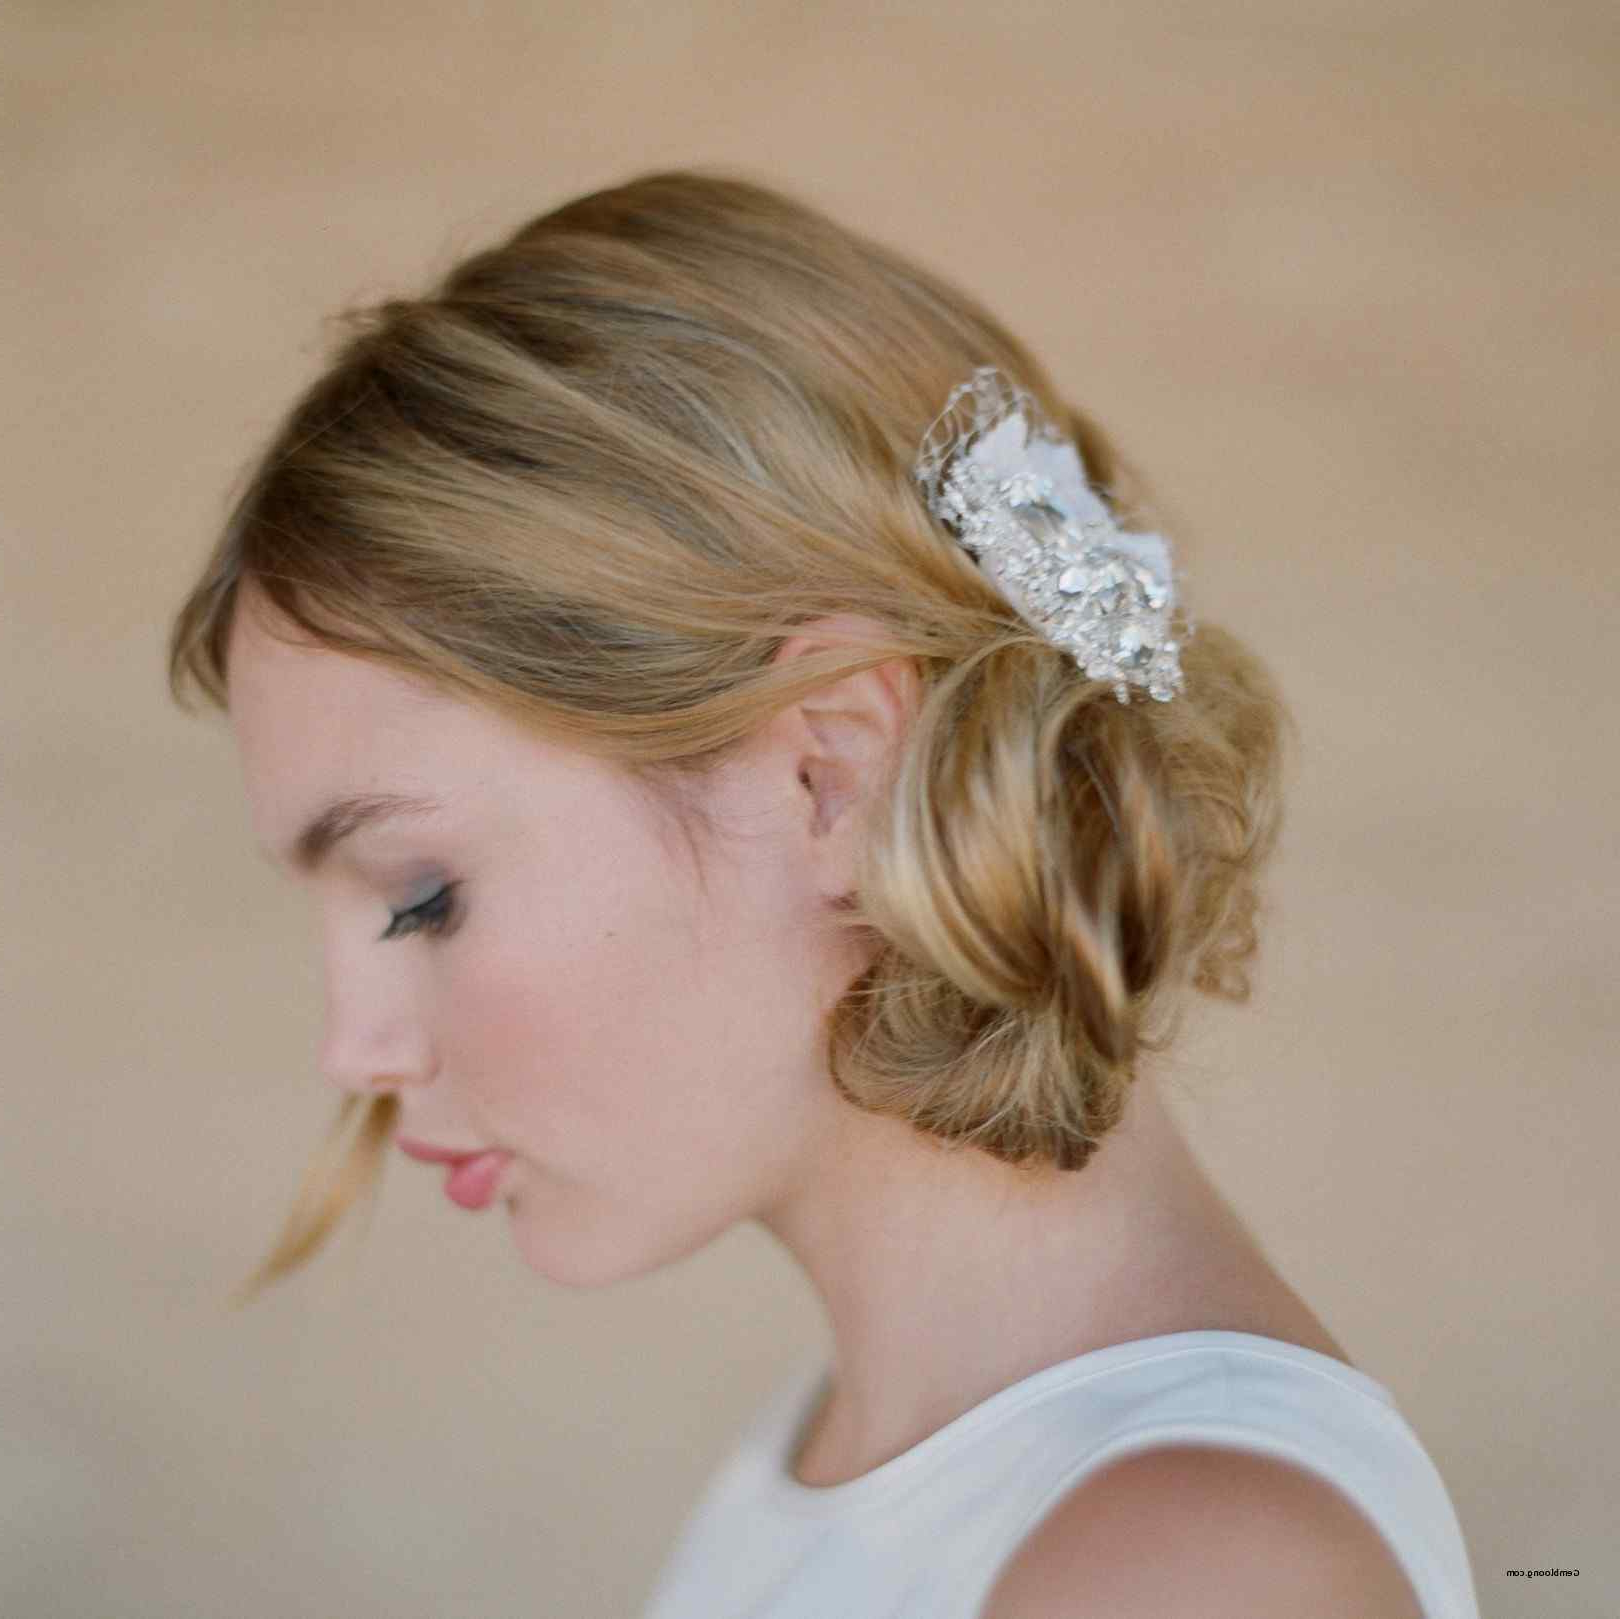 Wedding Hairstyles Updo With Veil Curls Up Dos Brides Lovely Half Throughout Well Known Short Wedding Hairstyles With Vintage Curls (Gallery 2 of 20)